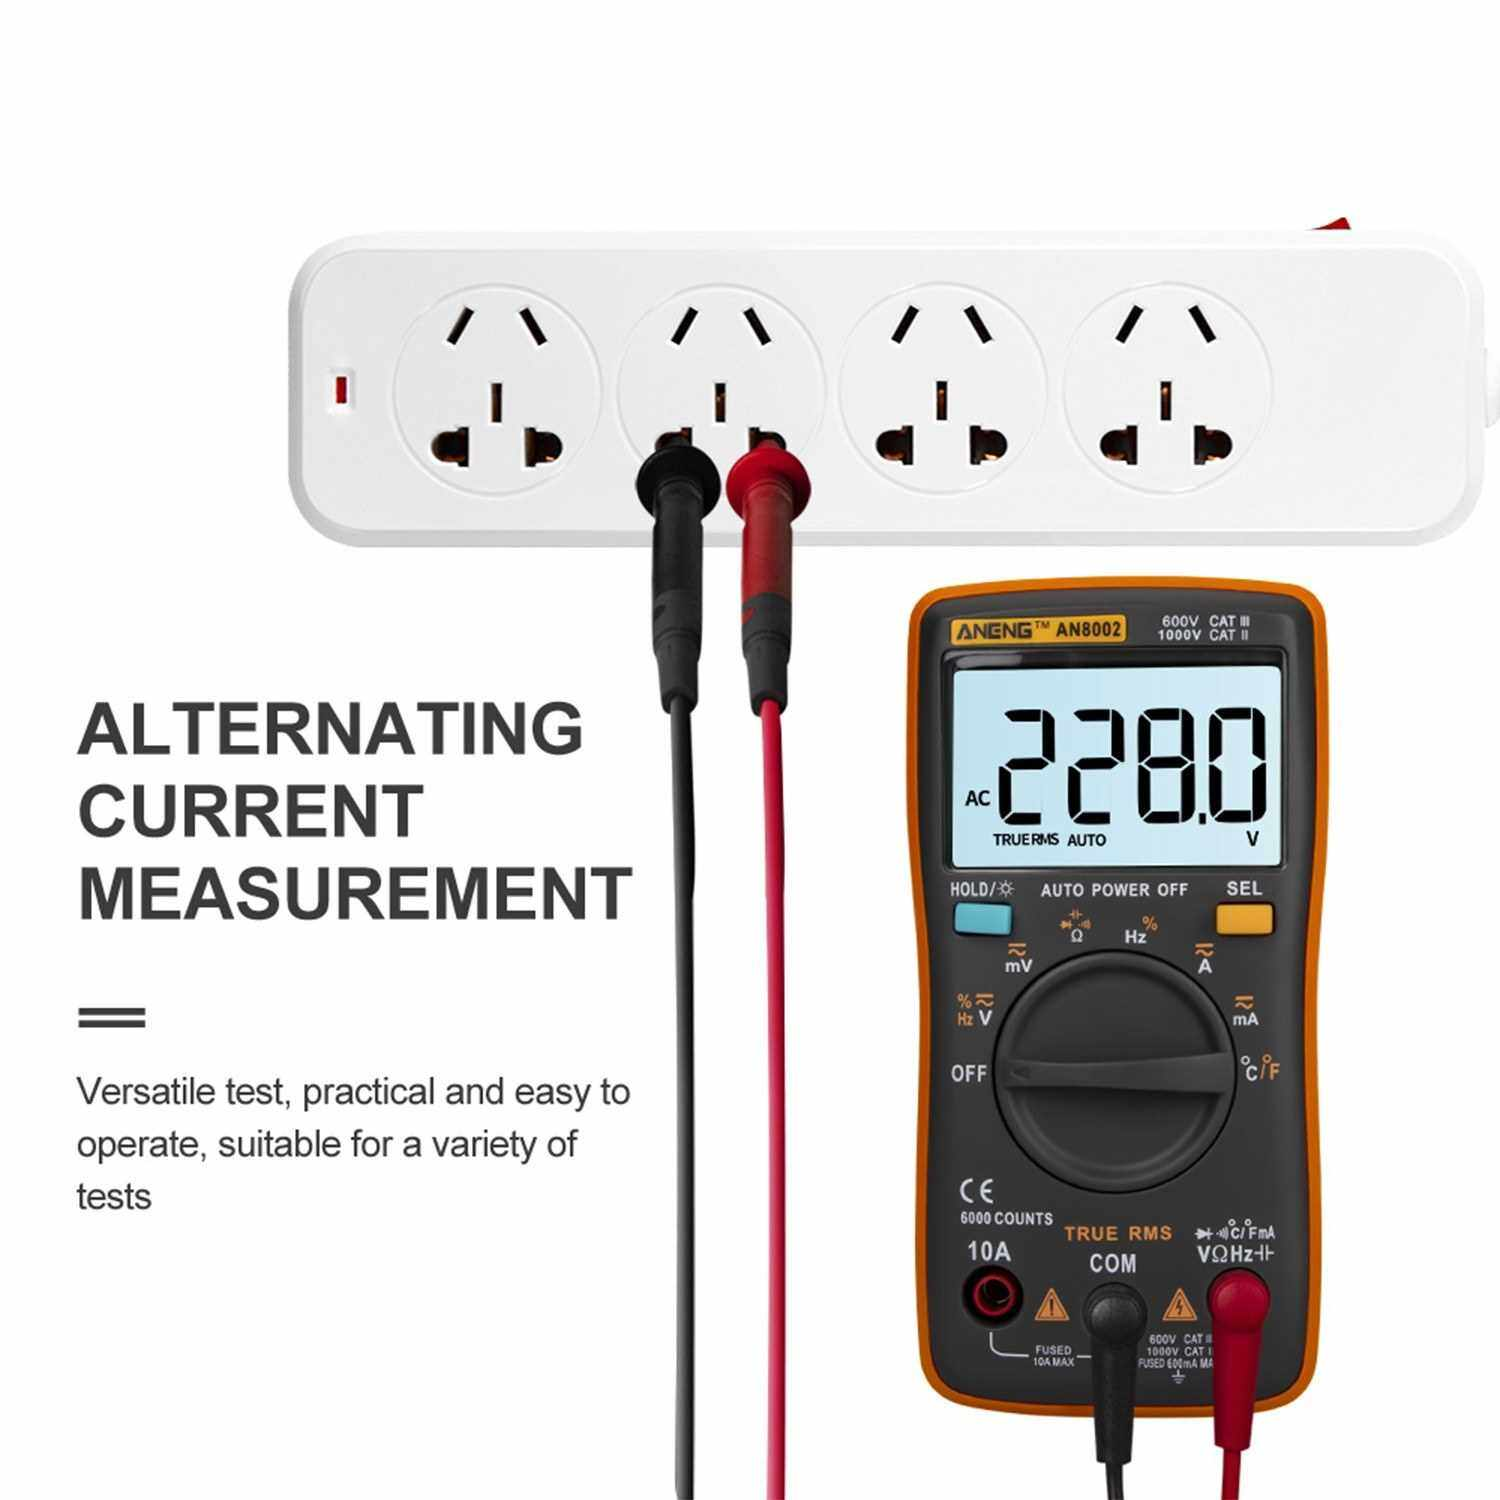 ANENG AN8002 6000 Counts True RMS Multifunctional Digital Multimeter Voltmeter Ammeter Handheld Mini Universal Meter High Accuracy Measure Temperature AC/DC Voltage AC/DC Current Resistance Capacitance Frequency Duty Cycle Diode Tester (Orange)